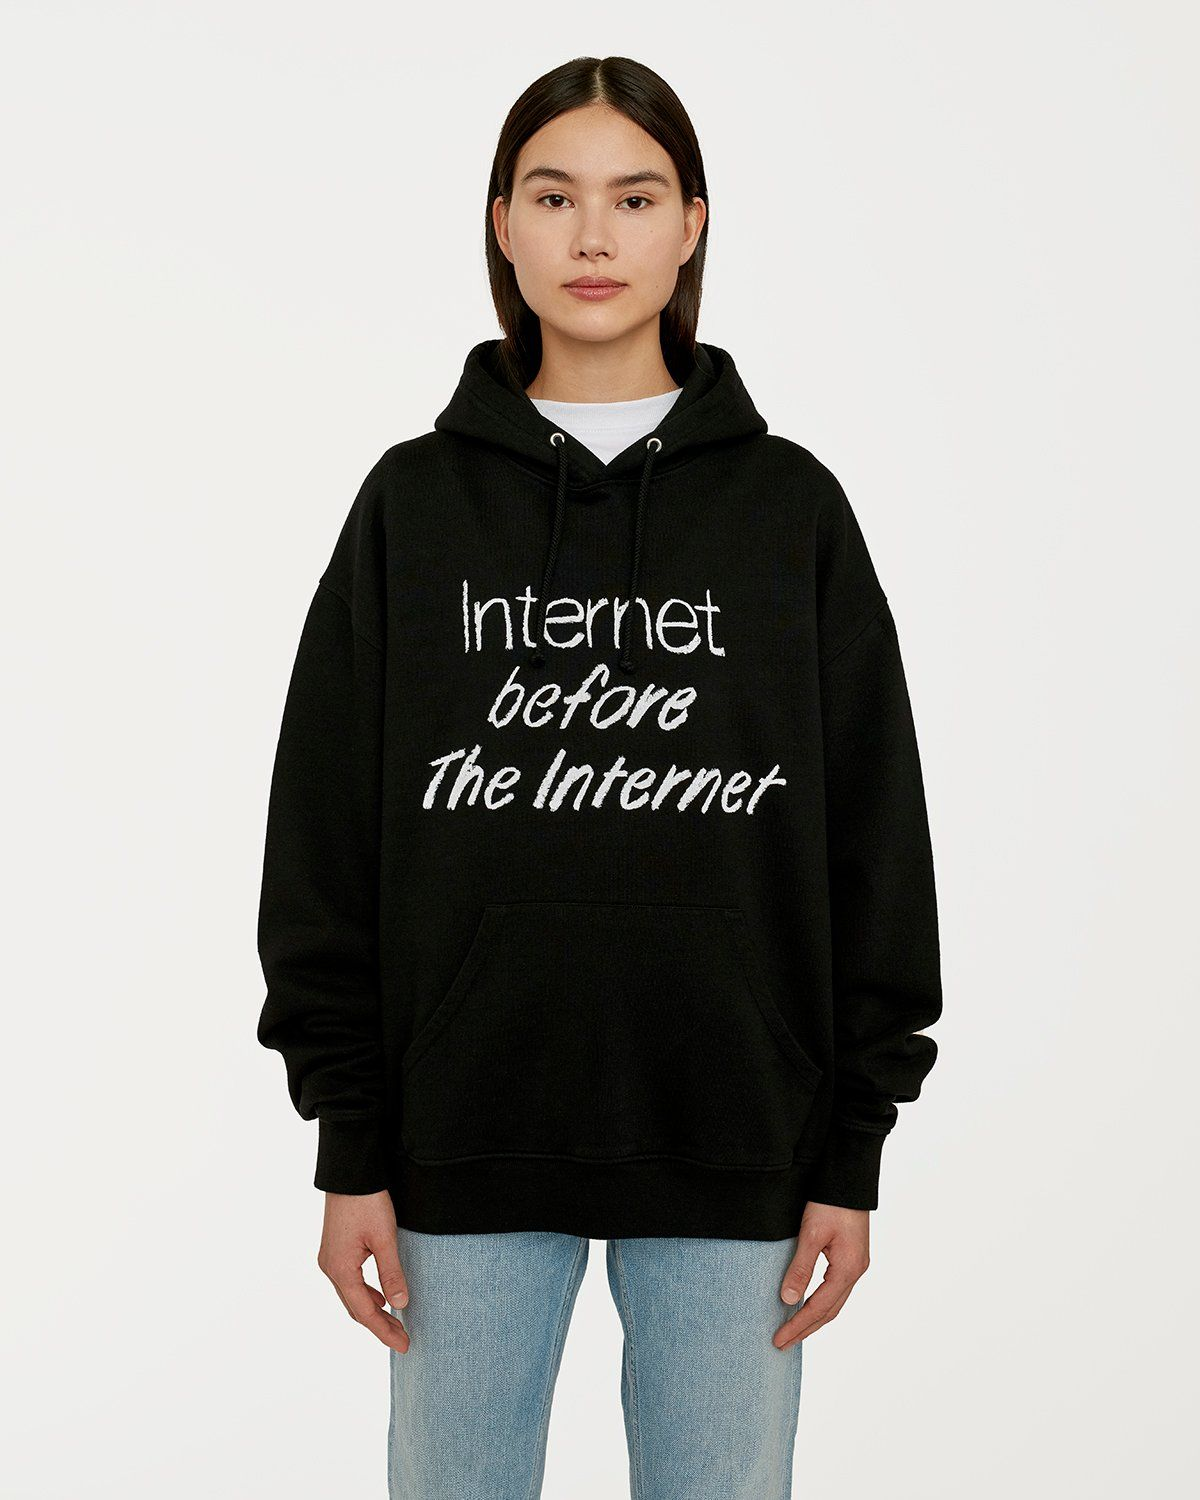 Colette Mon Amour — The Internet Before The Internet Hoodie Black - Image 4